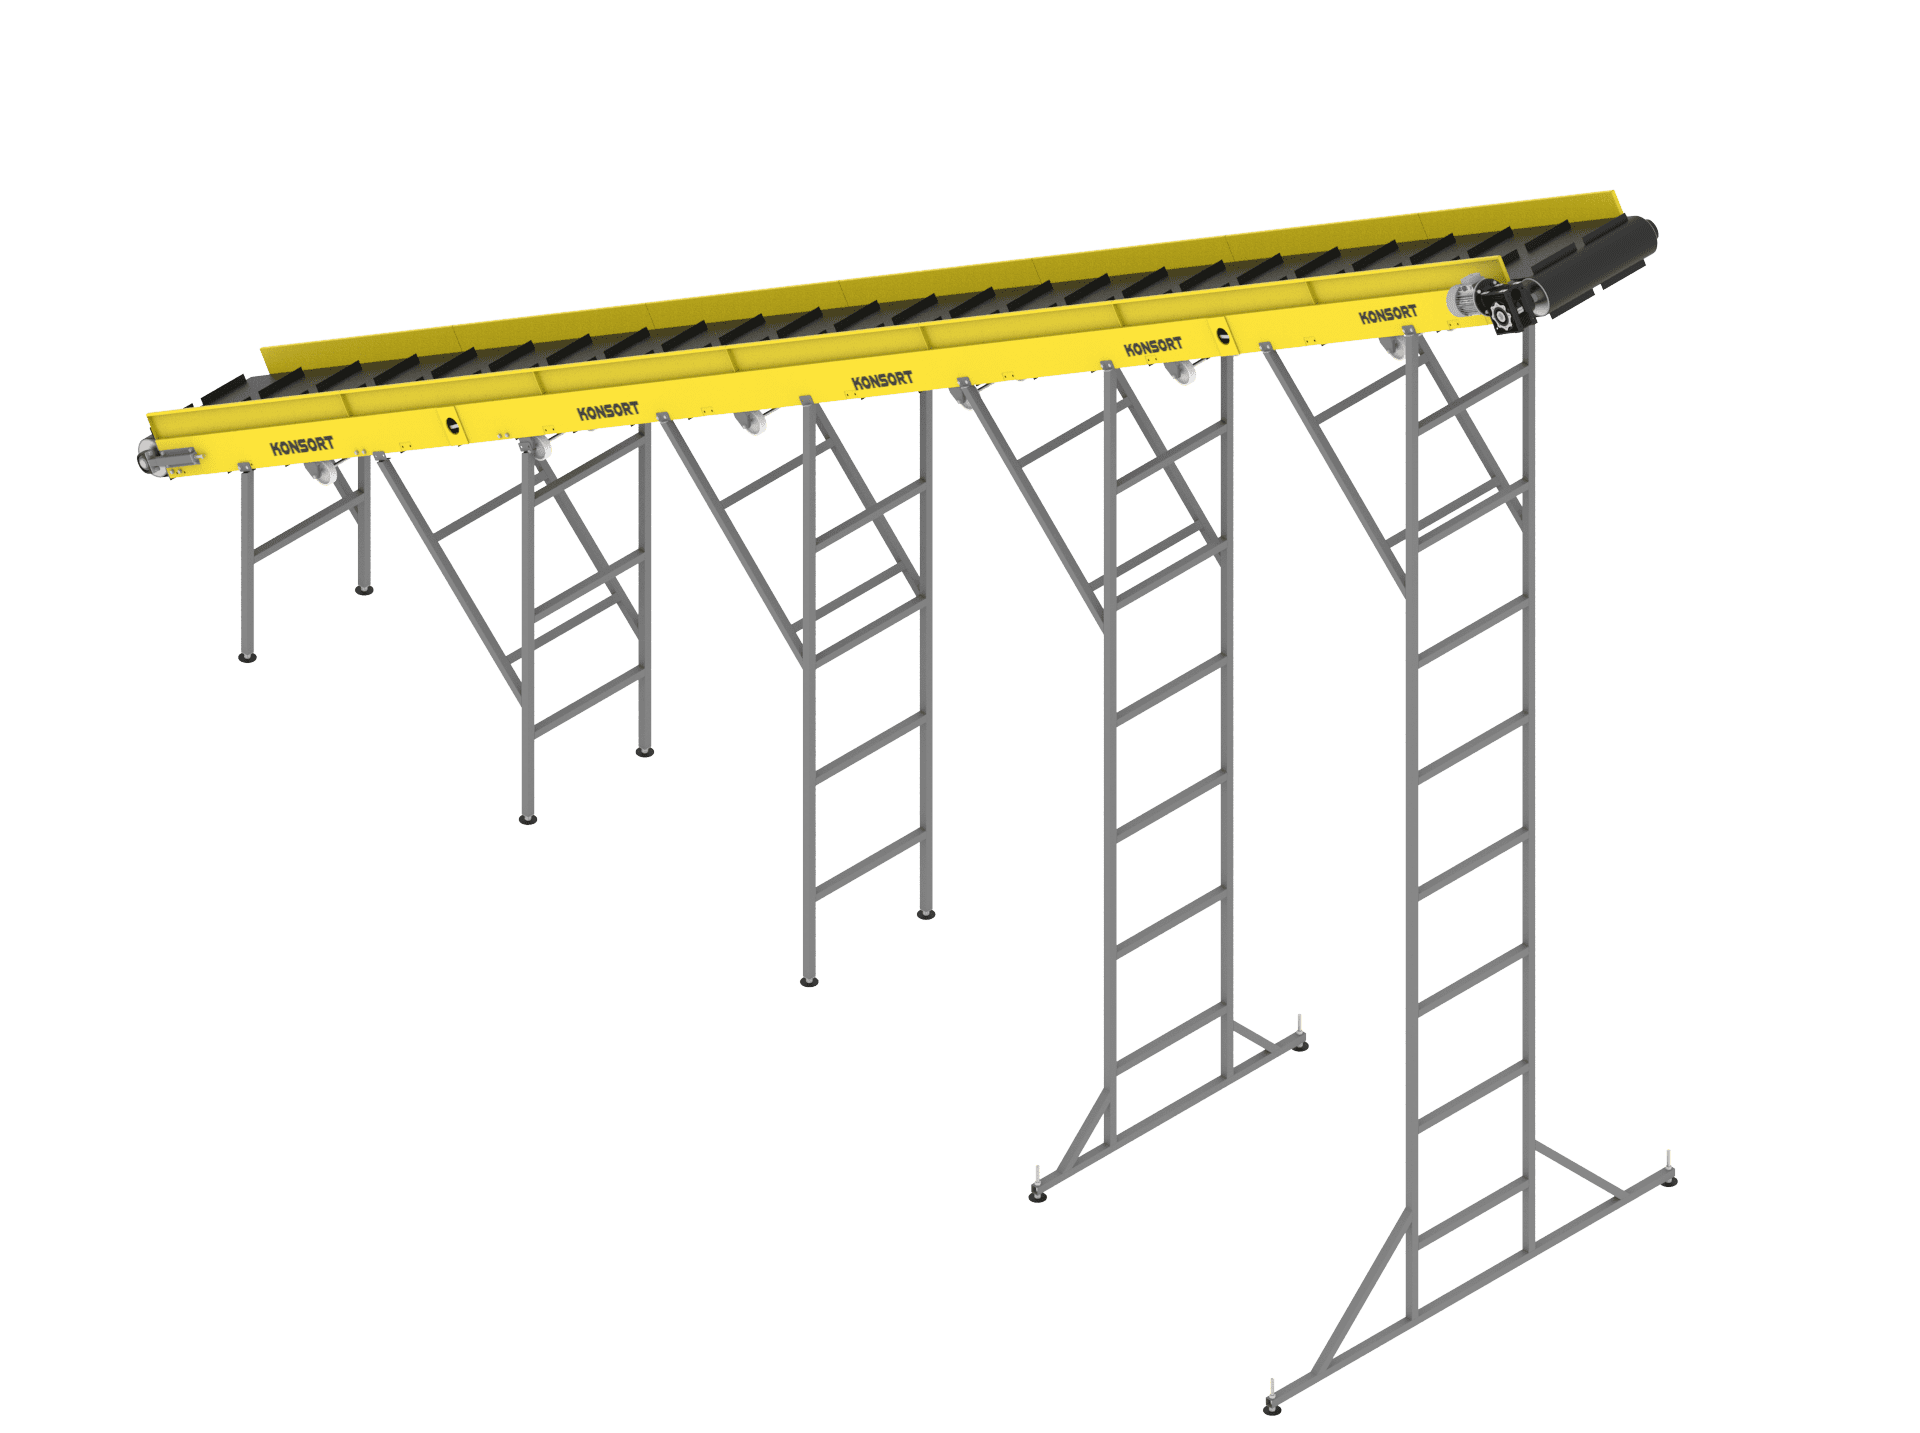 The conveyor is inclined